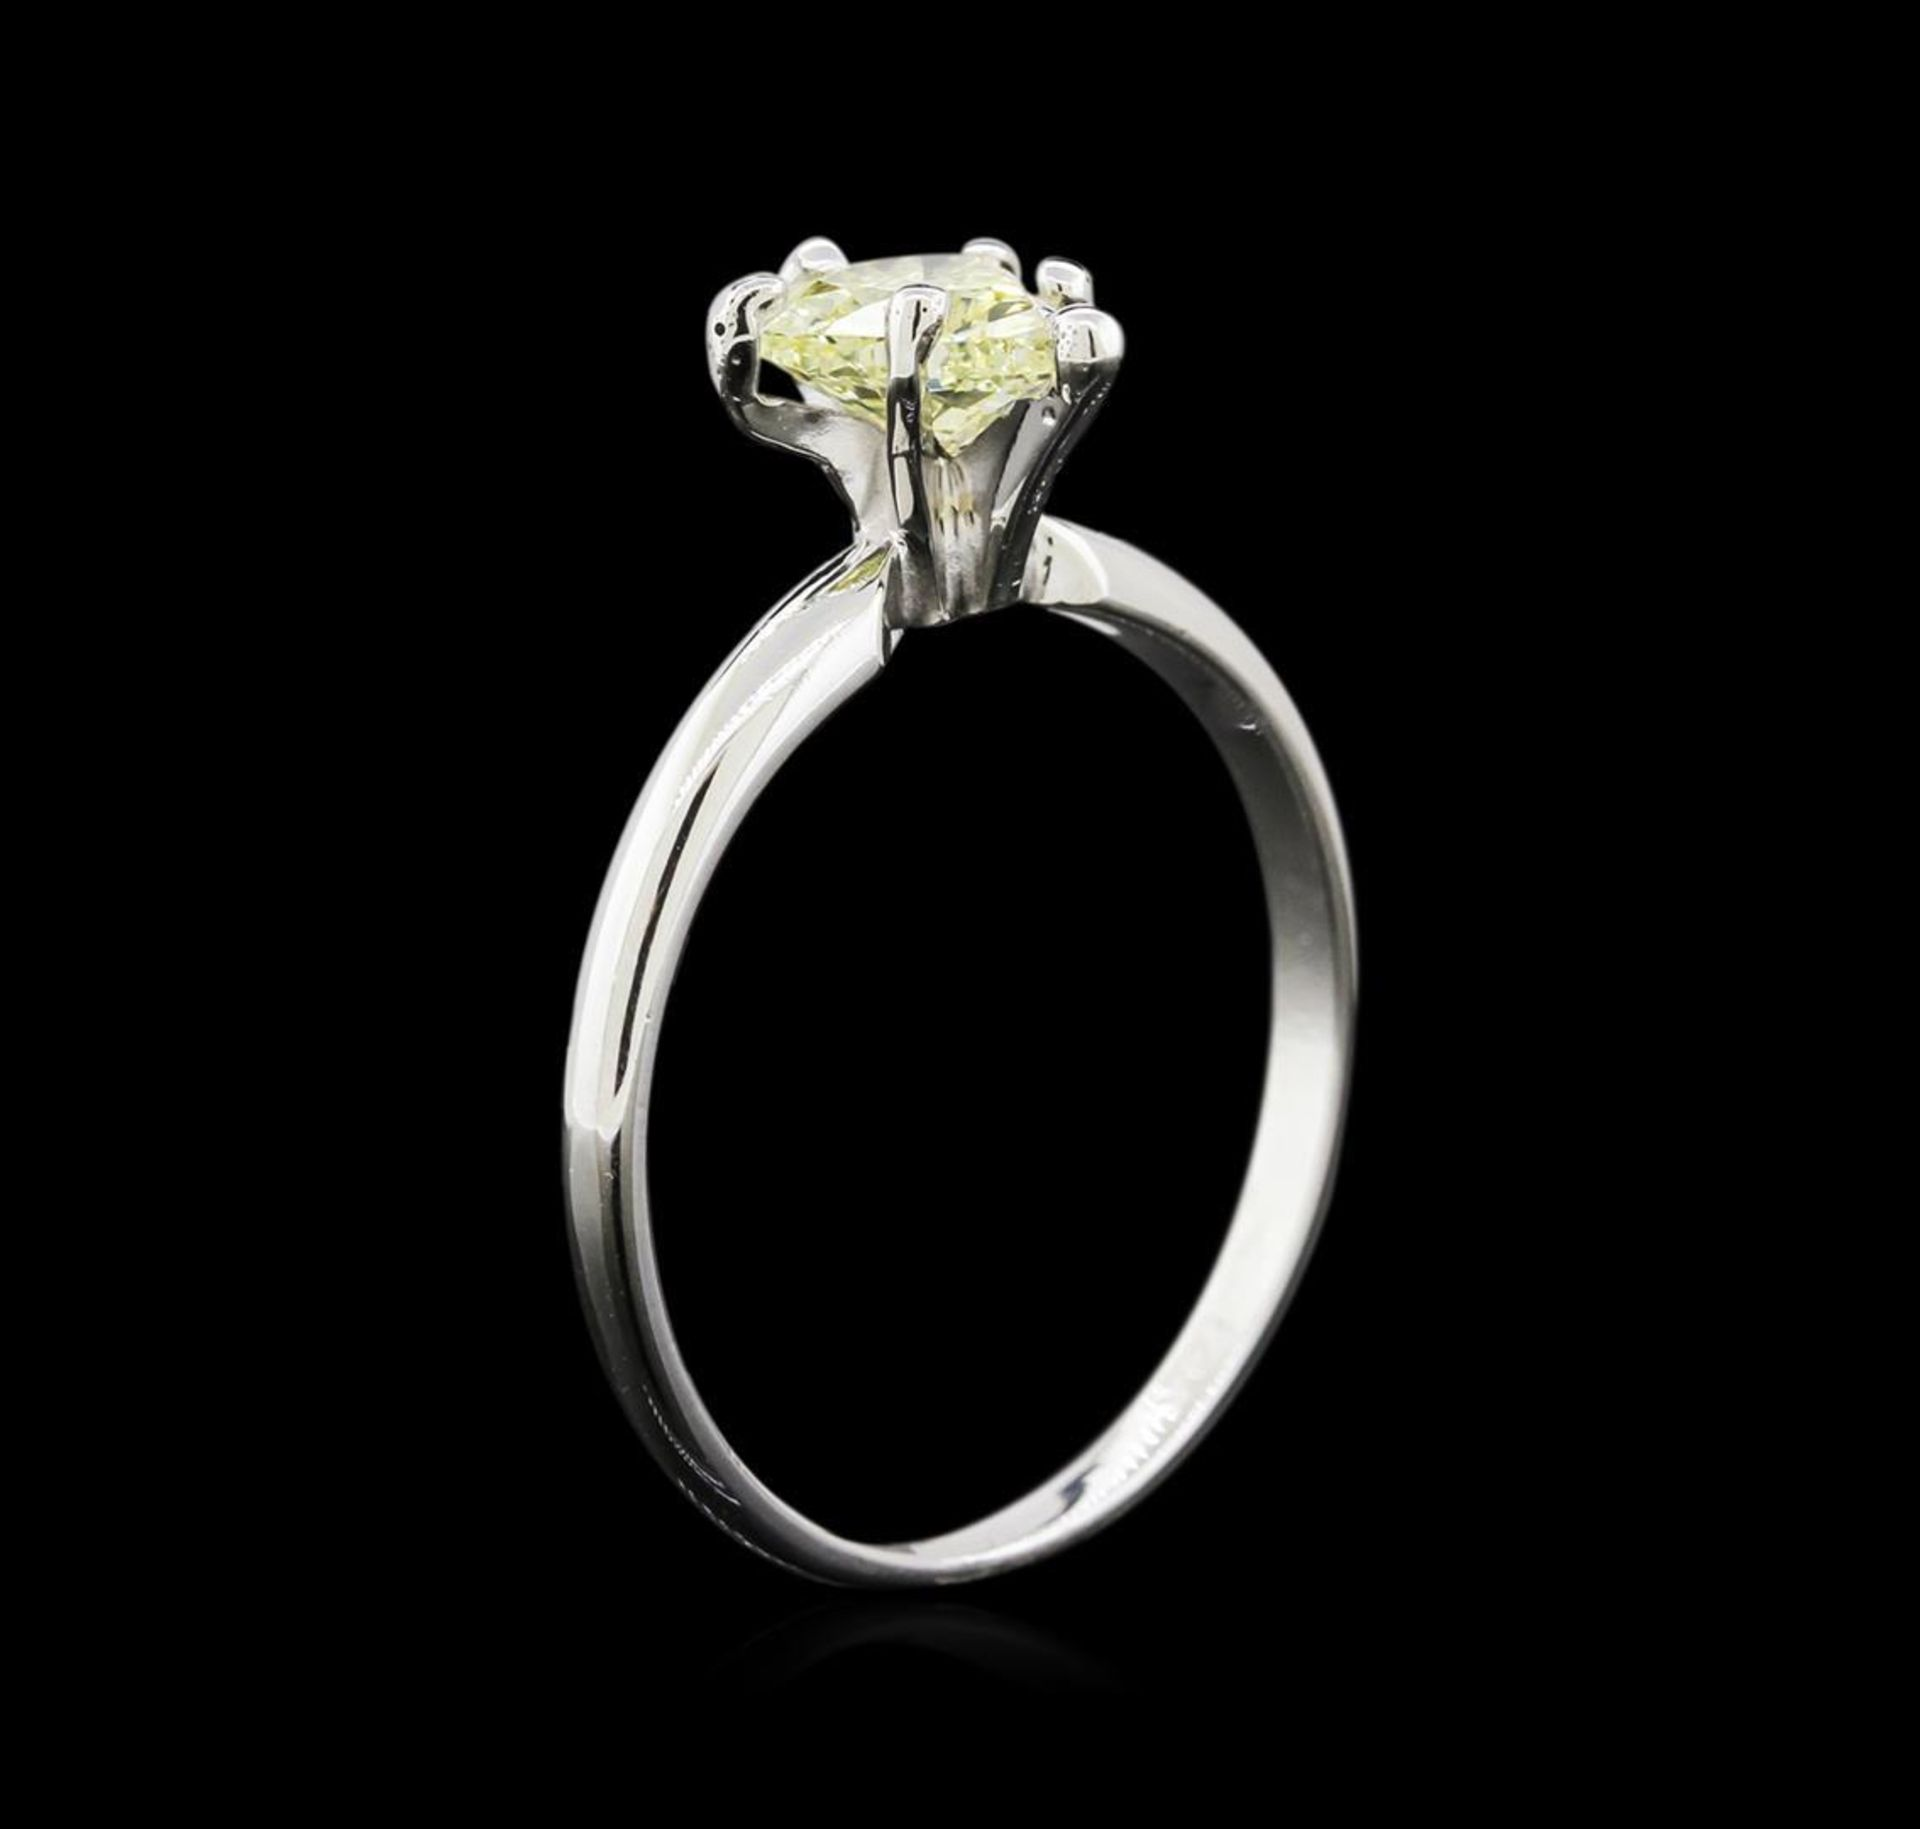 GIA Cert 0.74 ctw Diamond Solitaire Ring - 14KT White Gold - Image 3 of 5